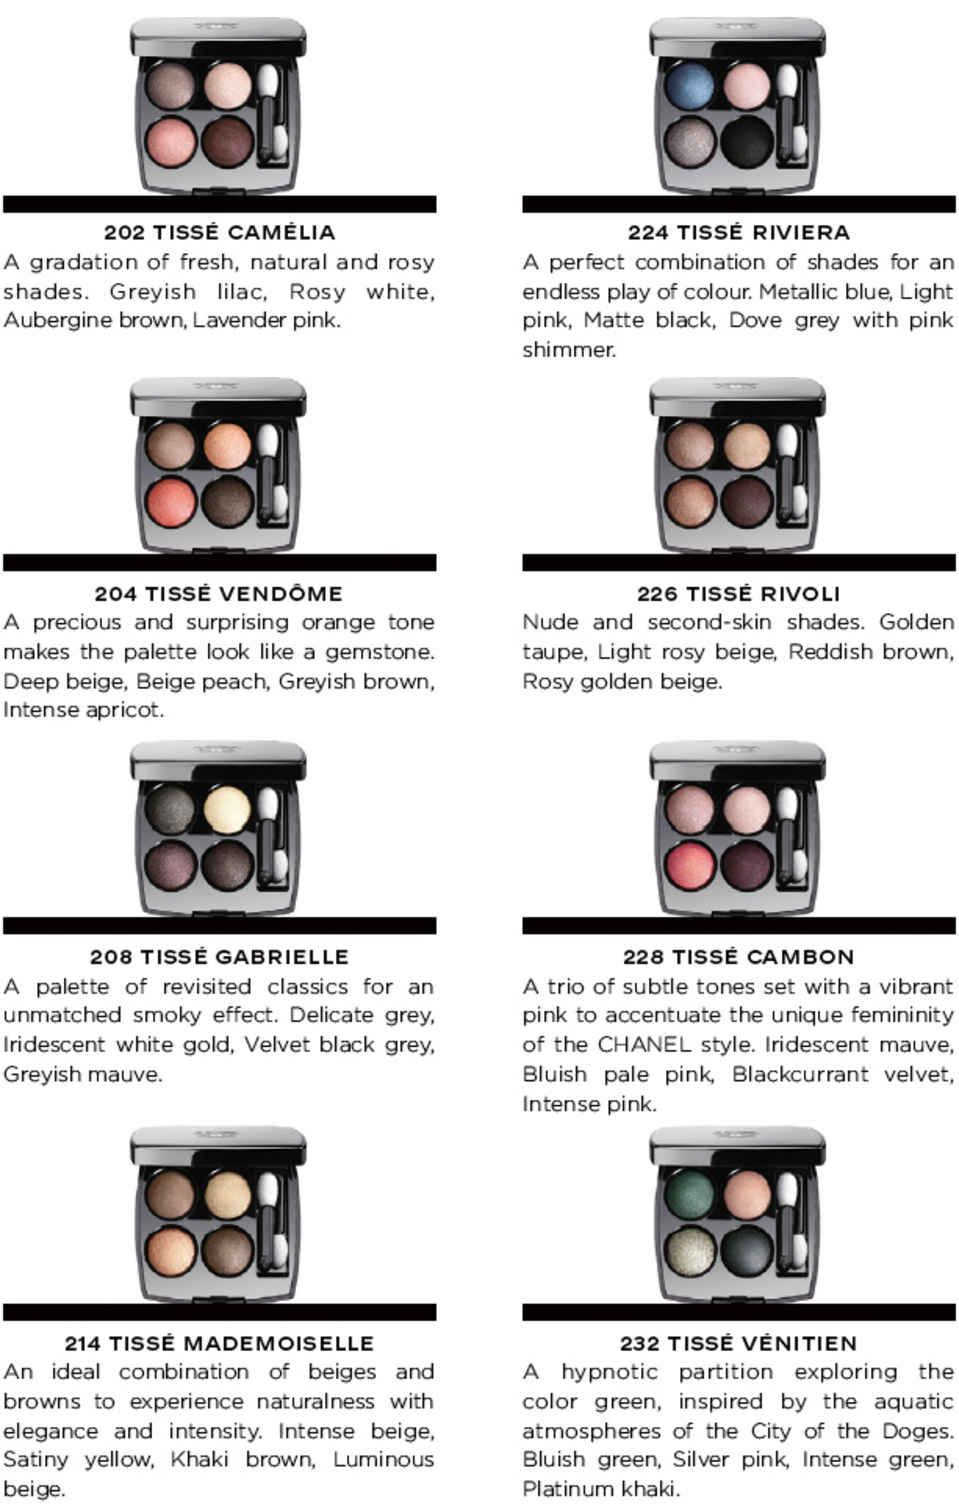 Chanel eye makeup chart how to wear chanel les 4 ombres eye if youve ever wanted a chanel eye makeup chart in colour for easy reference geenschuldenfo Gallery